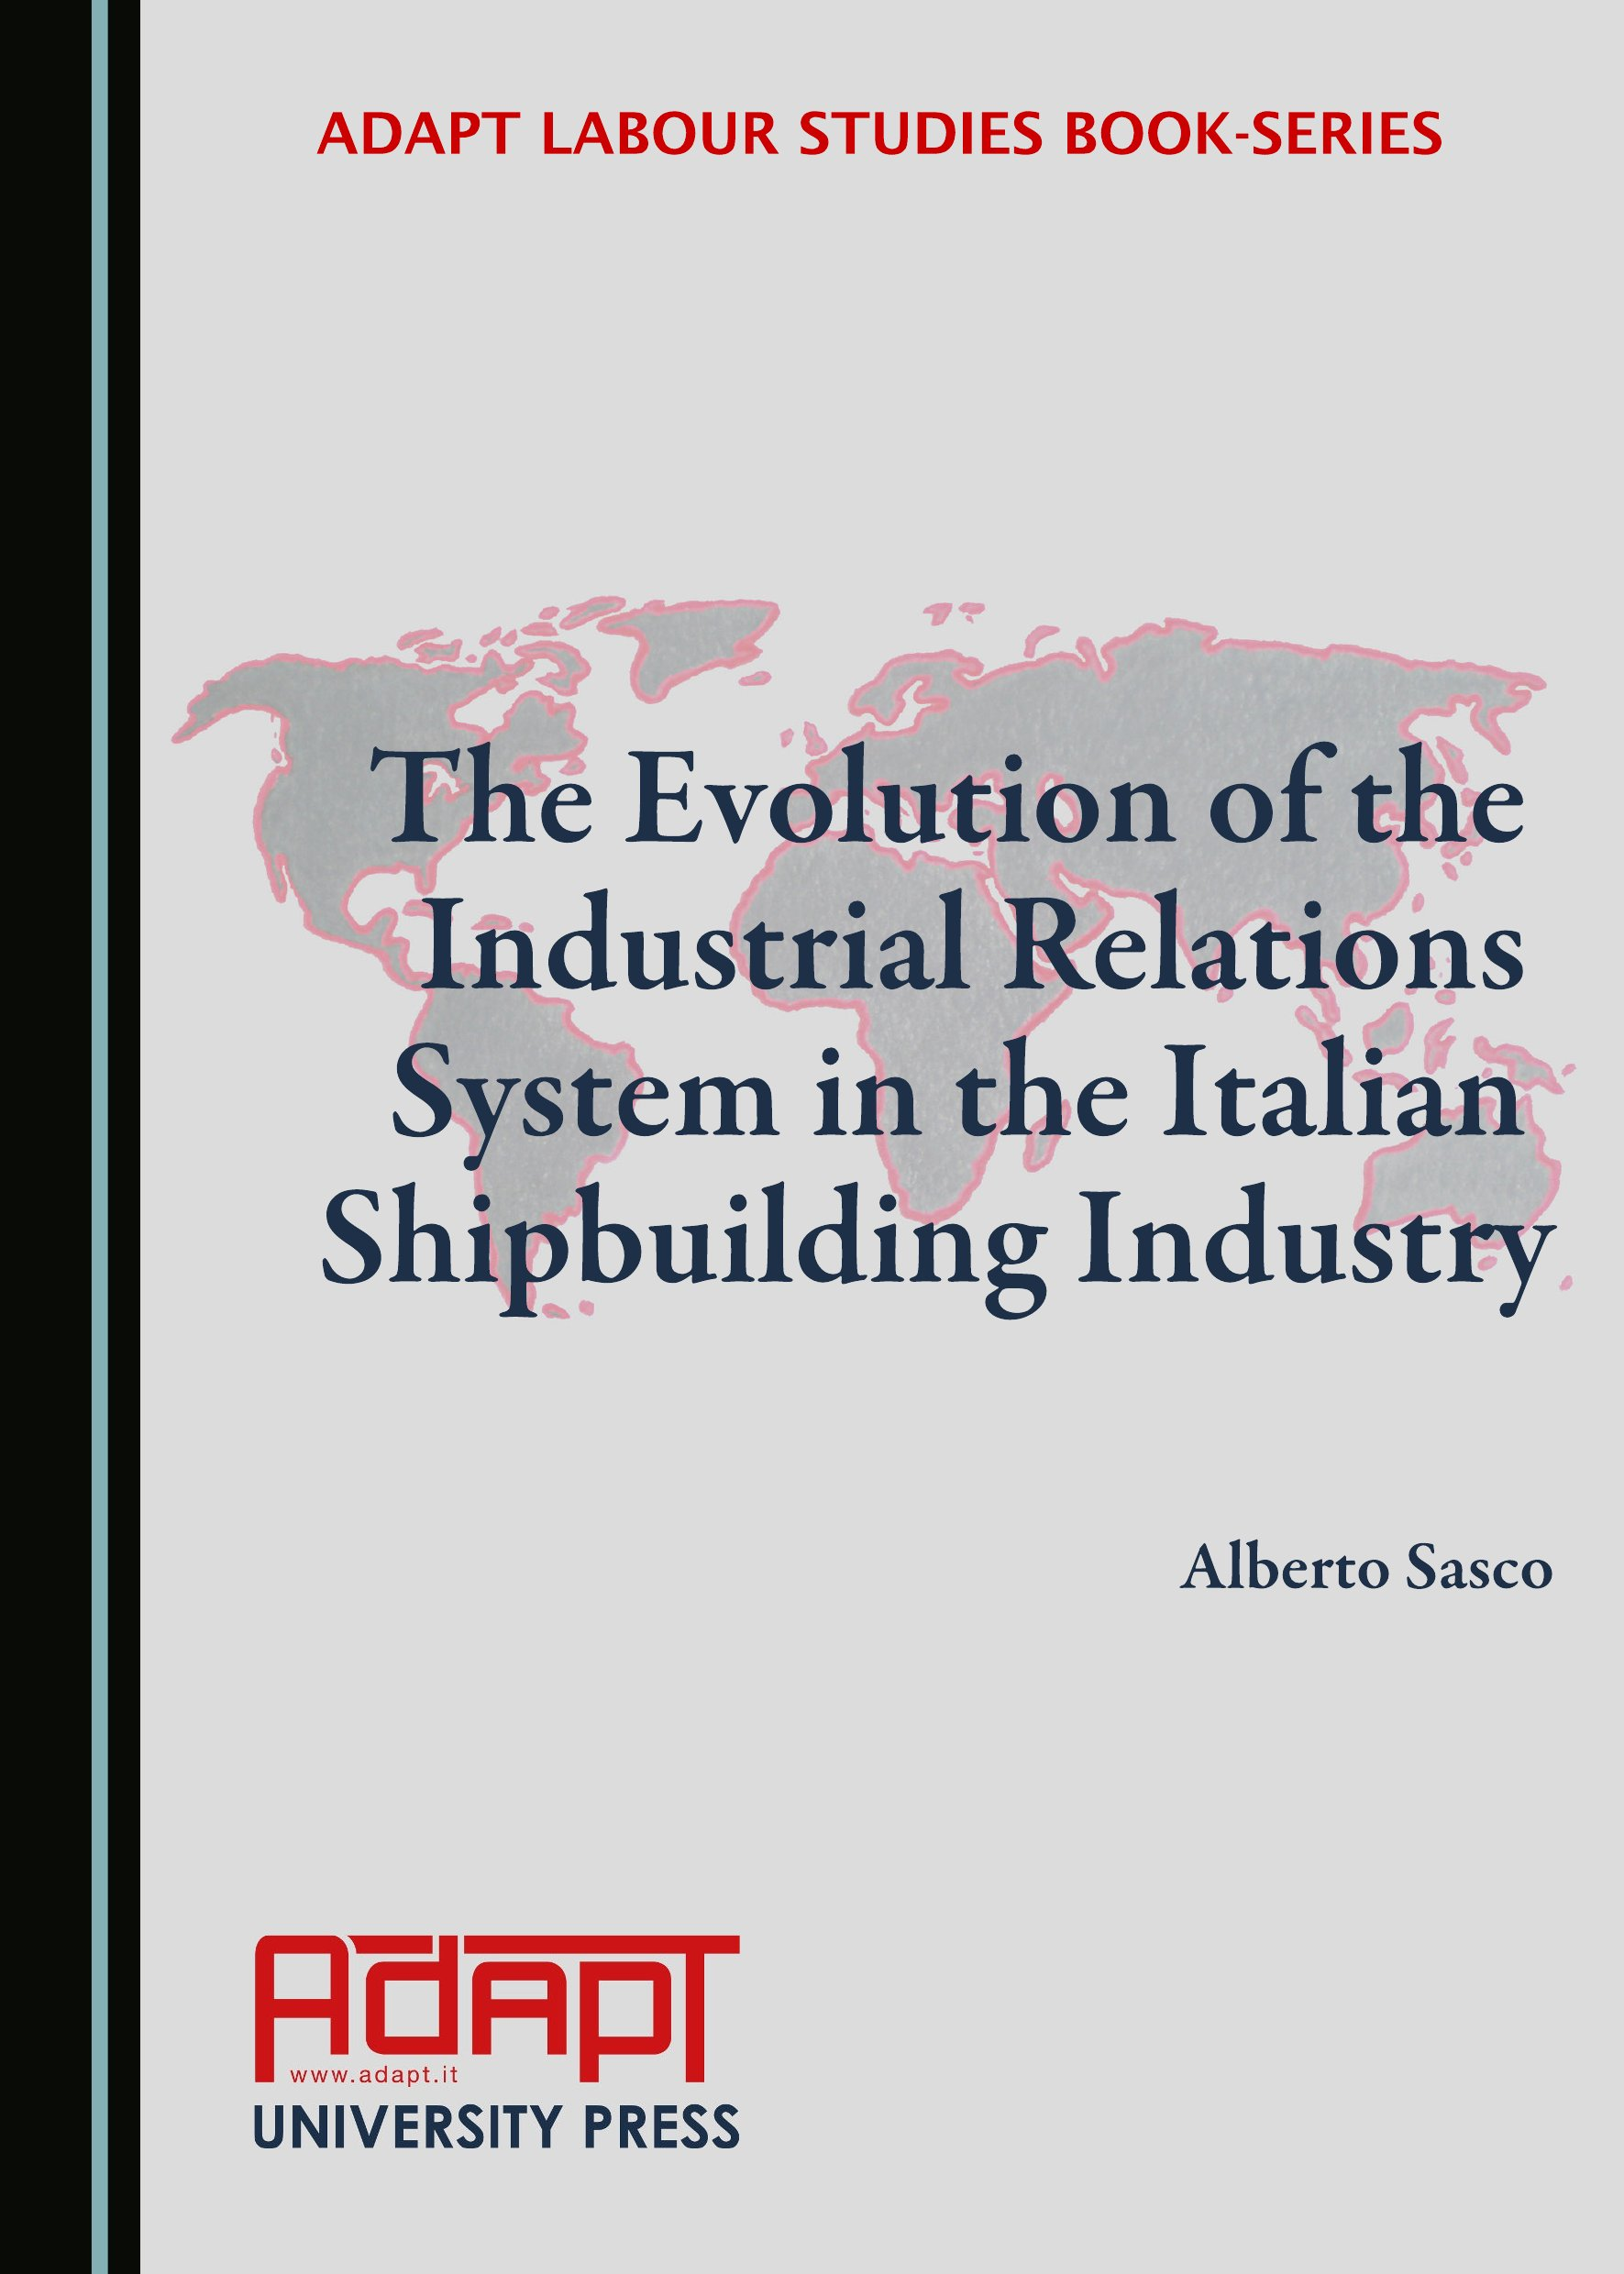 The Evolution of the Industrial Relations System in the Italian Shipbuilding Industry